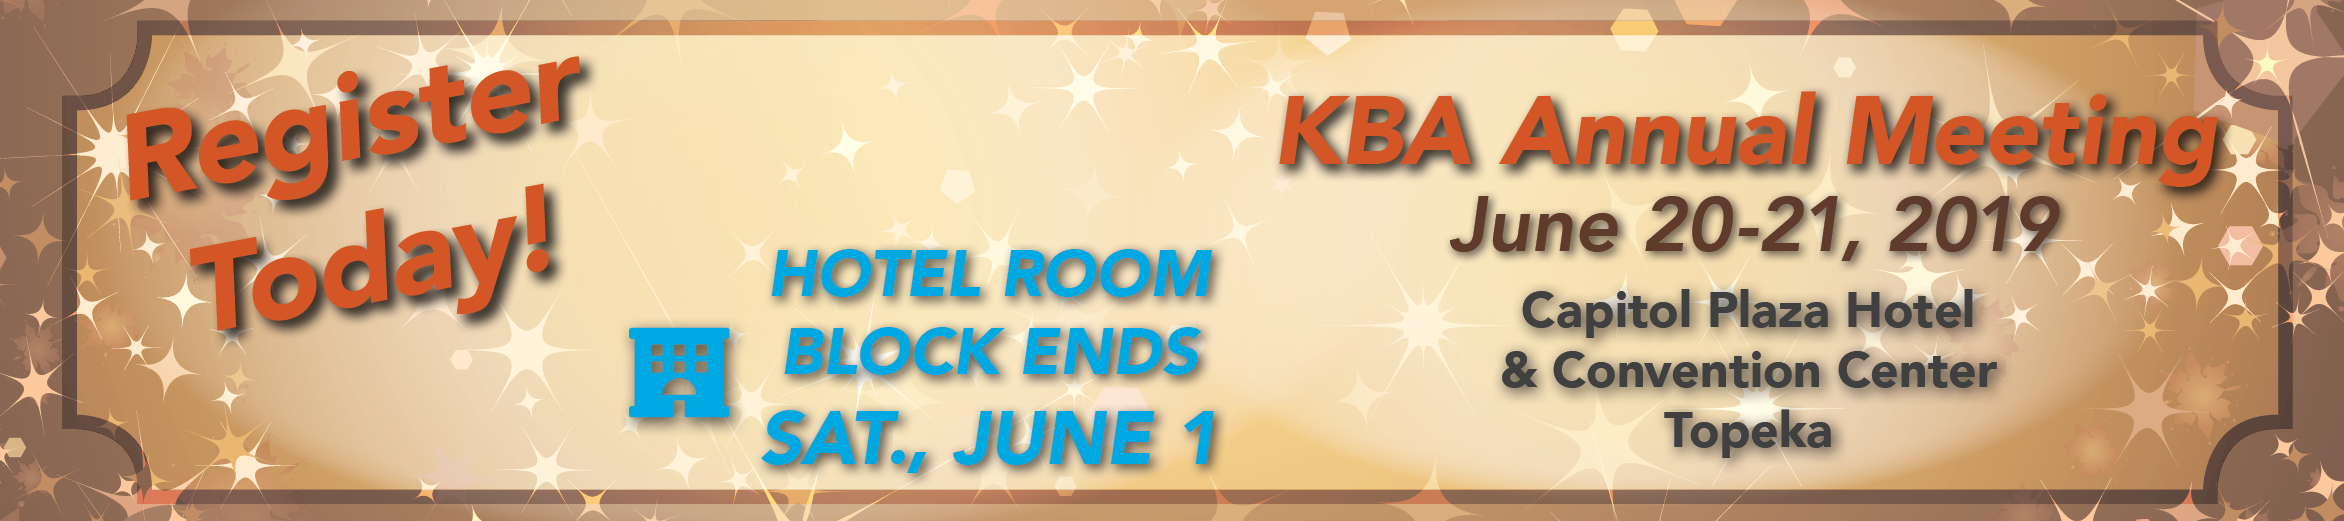 Annual Meeting 2019 - register for KBA annual meeting in Topeka. June 20-21, 2019